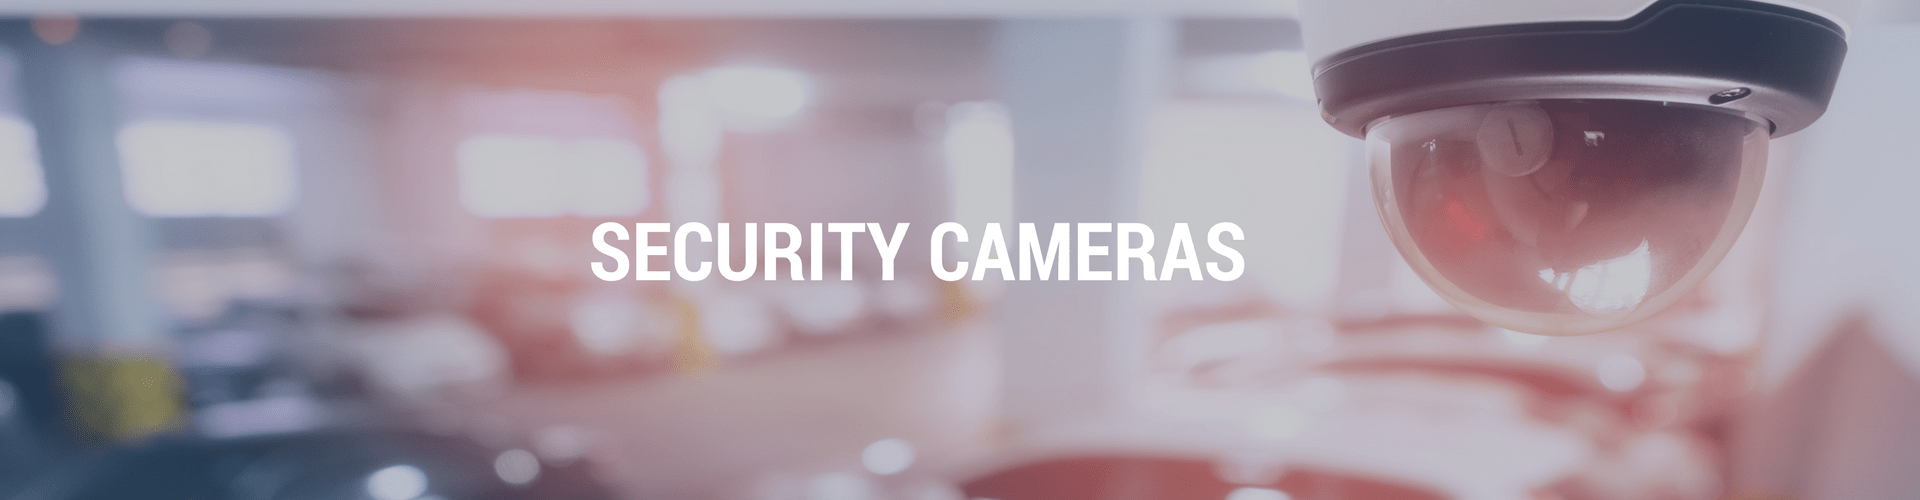 Axis Communications Security Camera Solution